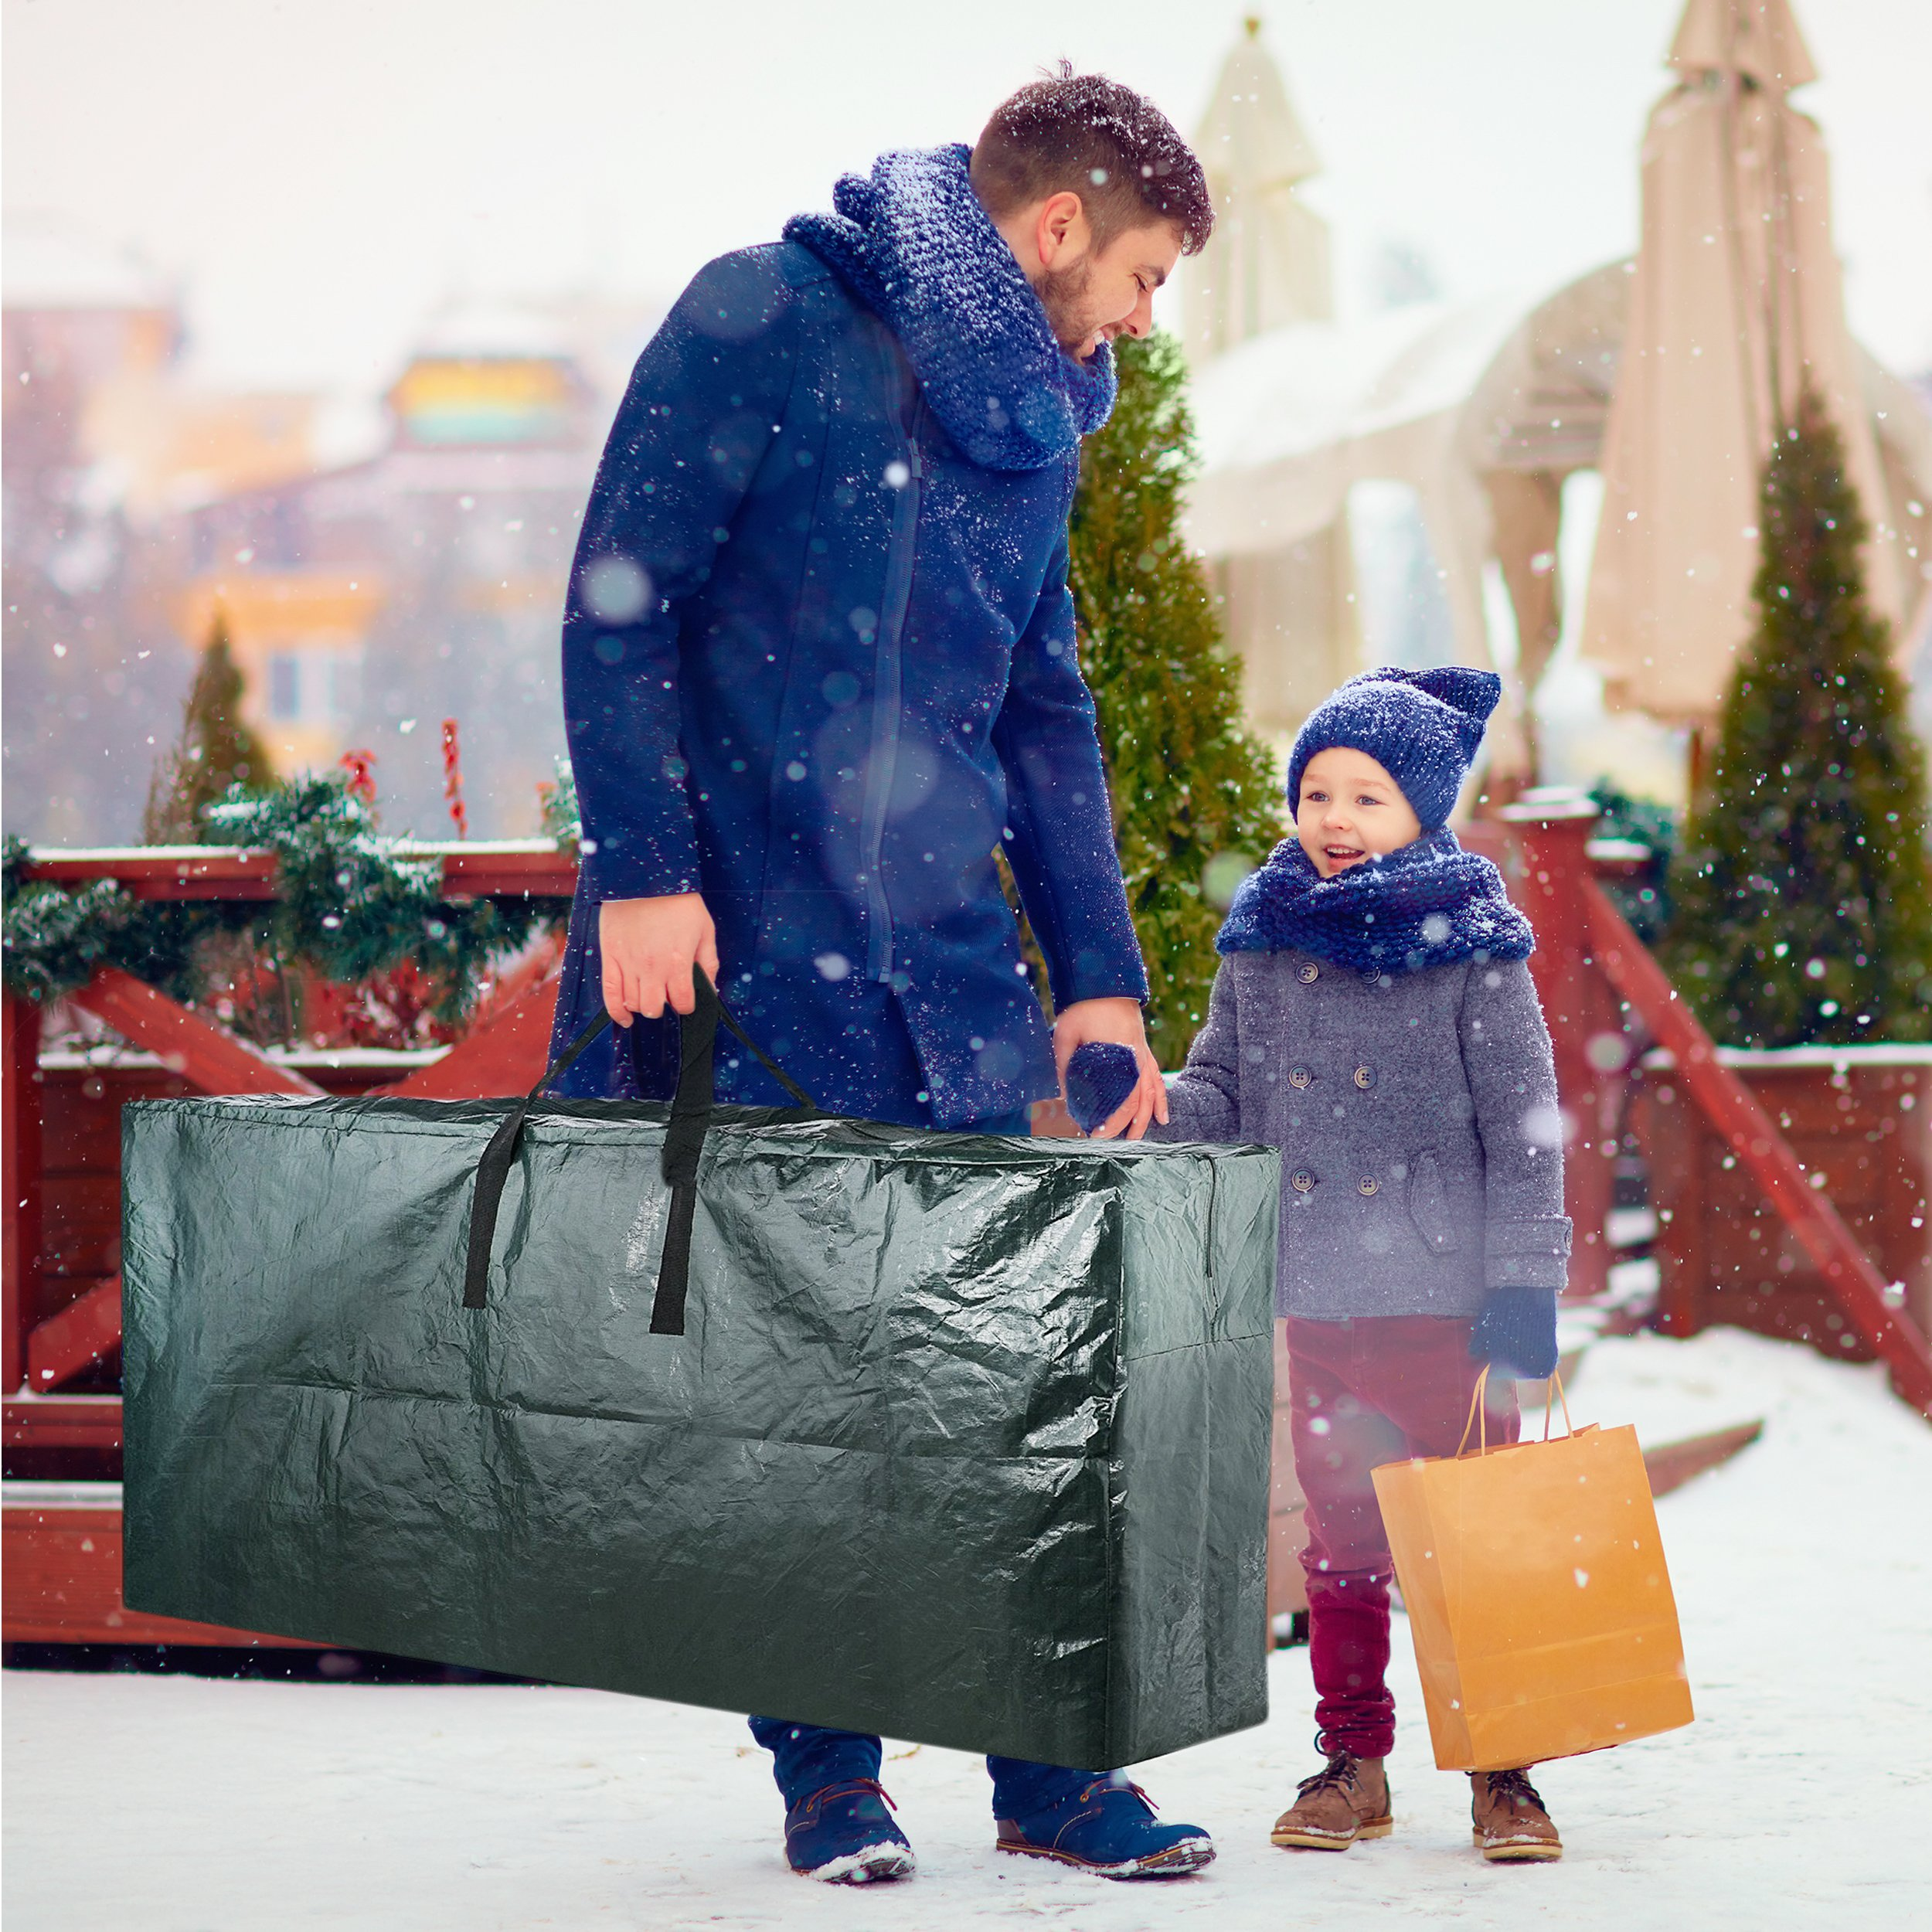 Domett Premium Christmas Tree Storage Bag, Extra Large Holiday Decoration Container, Holds up to 9 Feet Artificial Trees